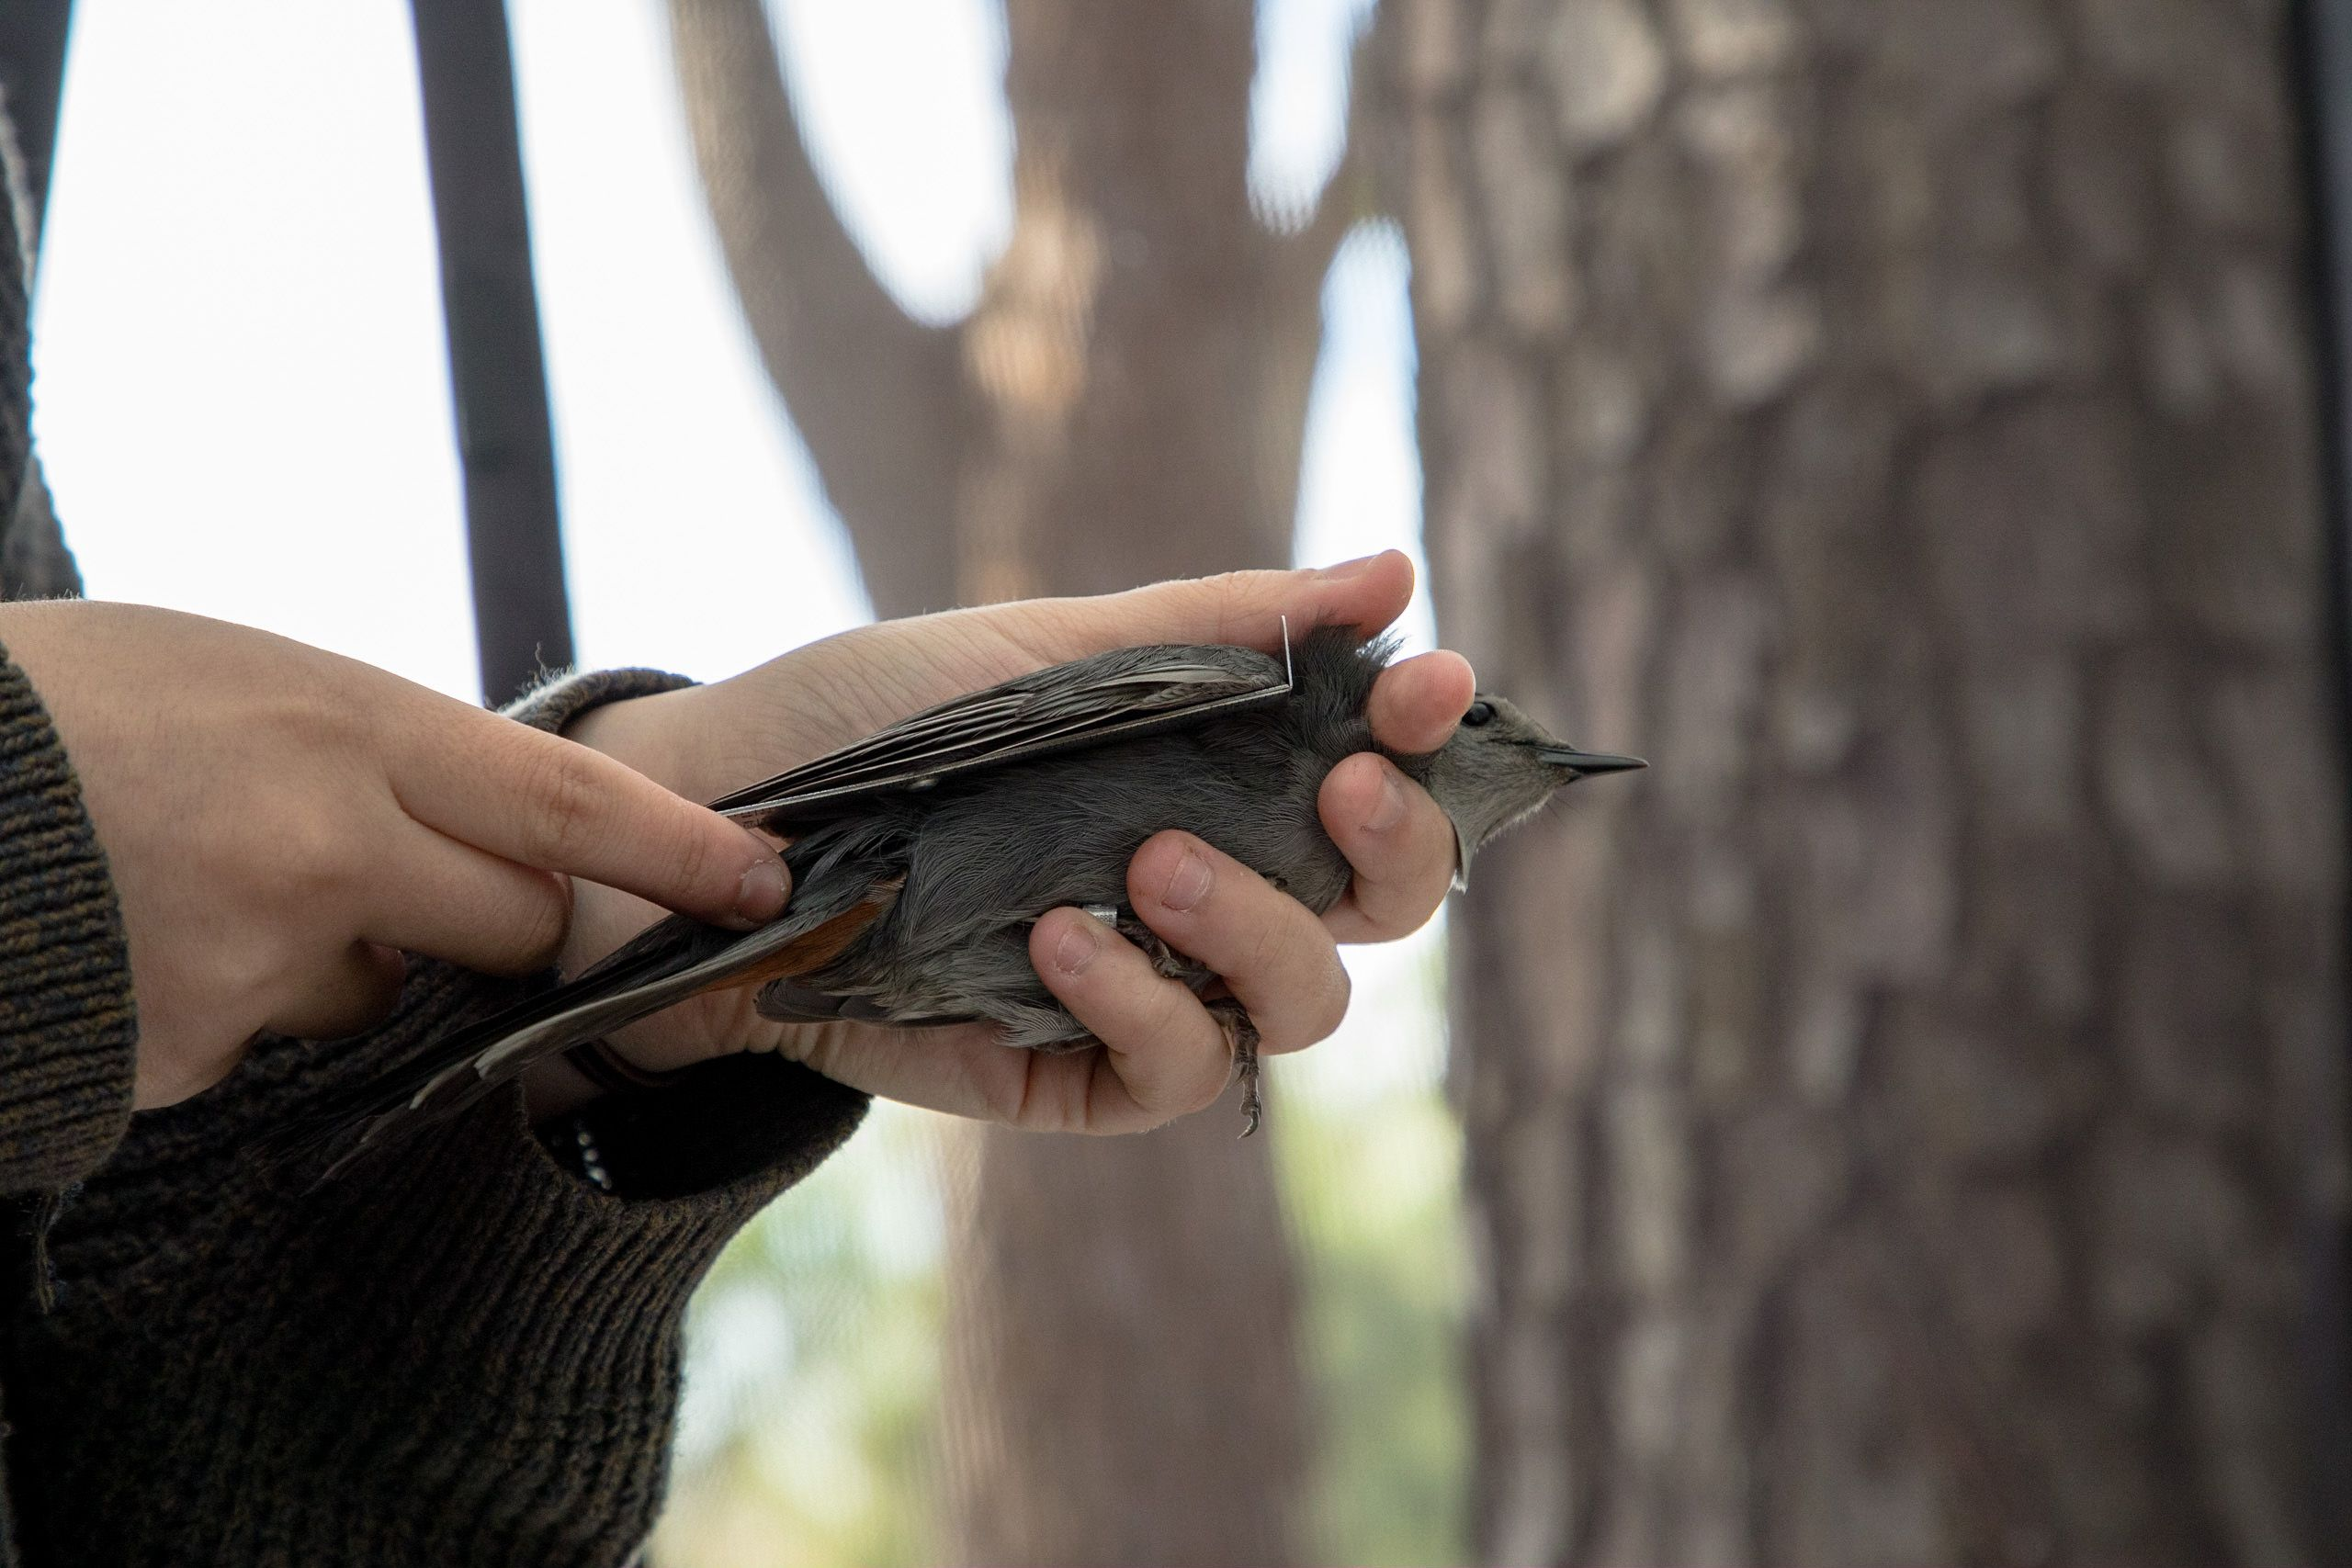 A person holds a small gray bird and uses a ruler to take its measurements.